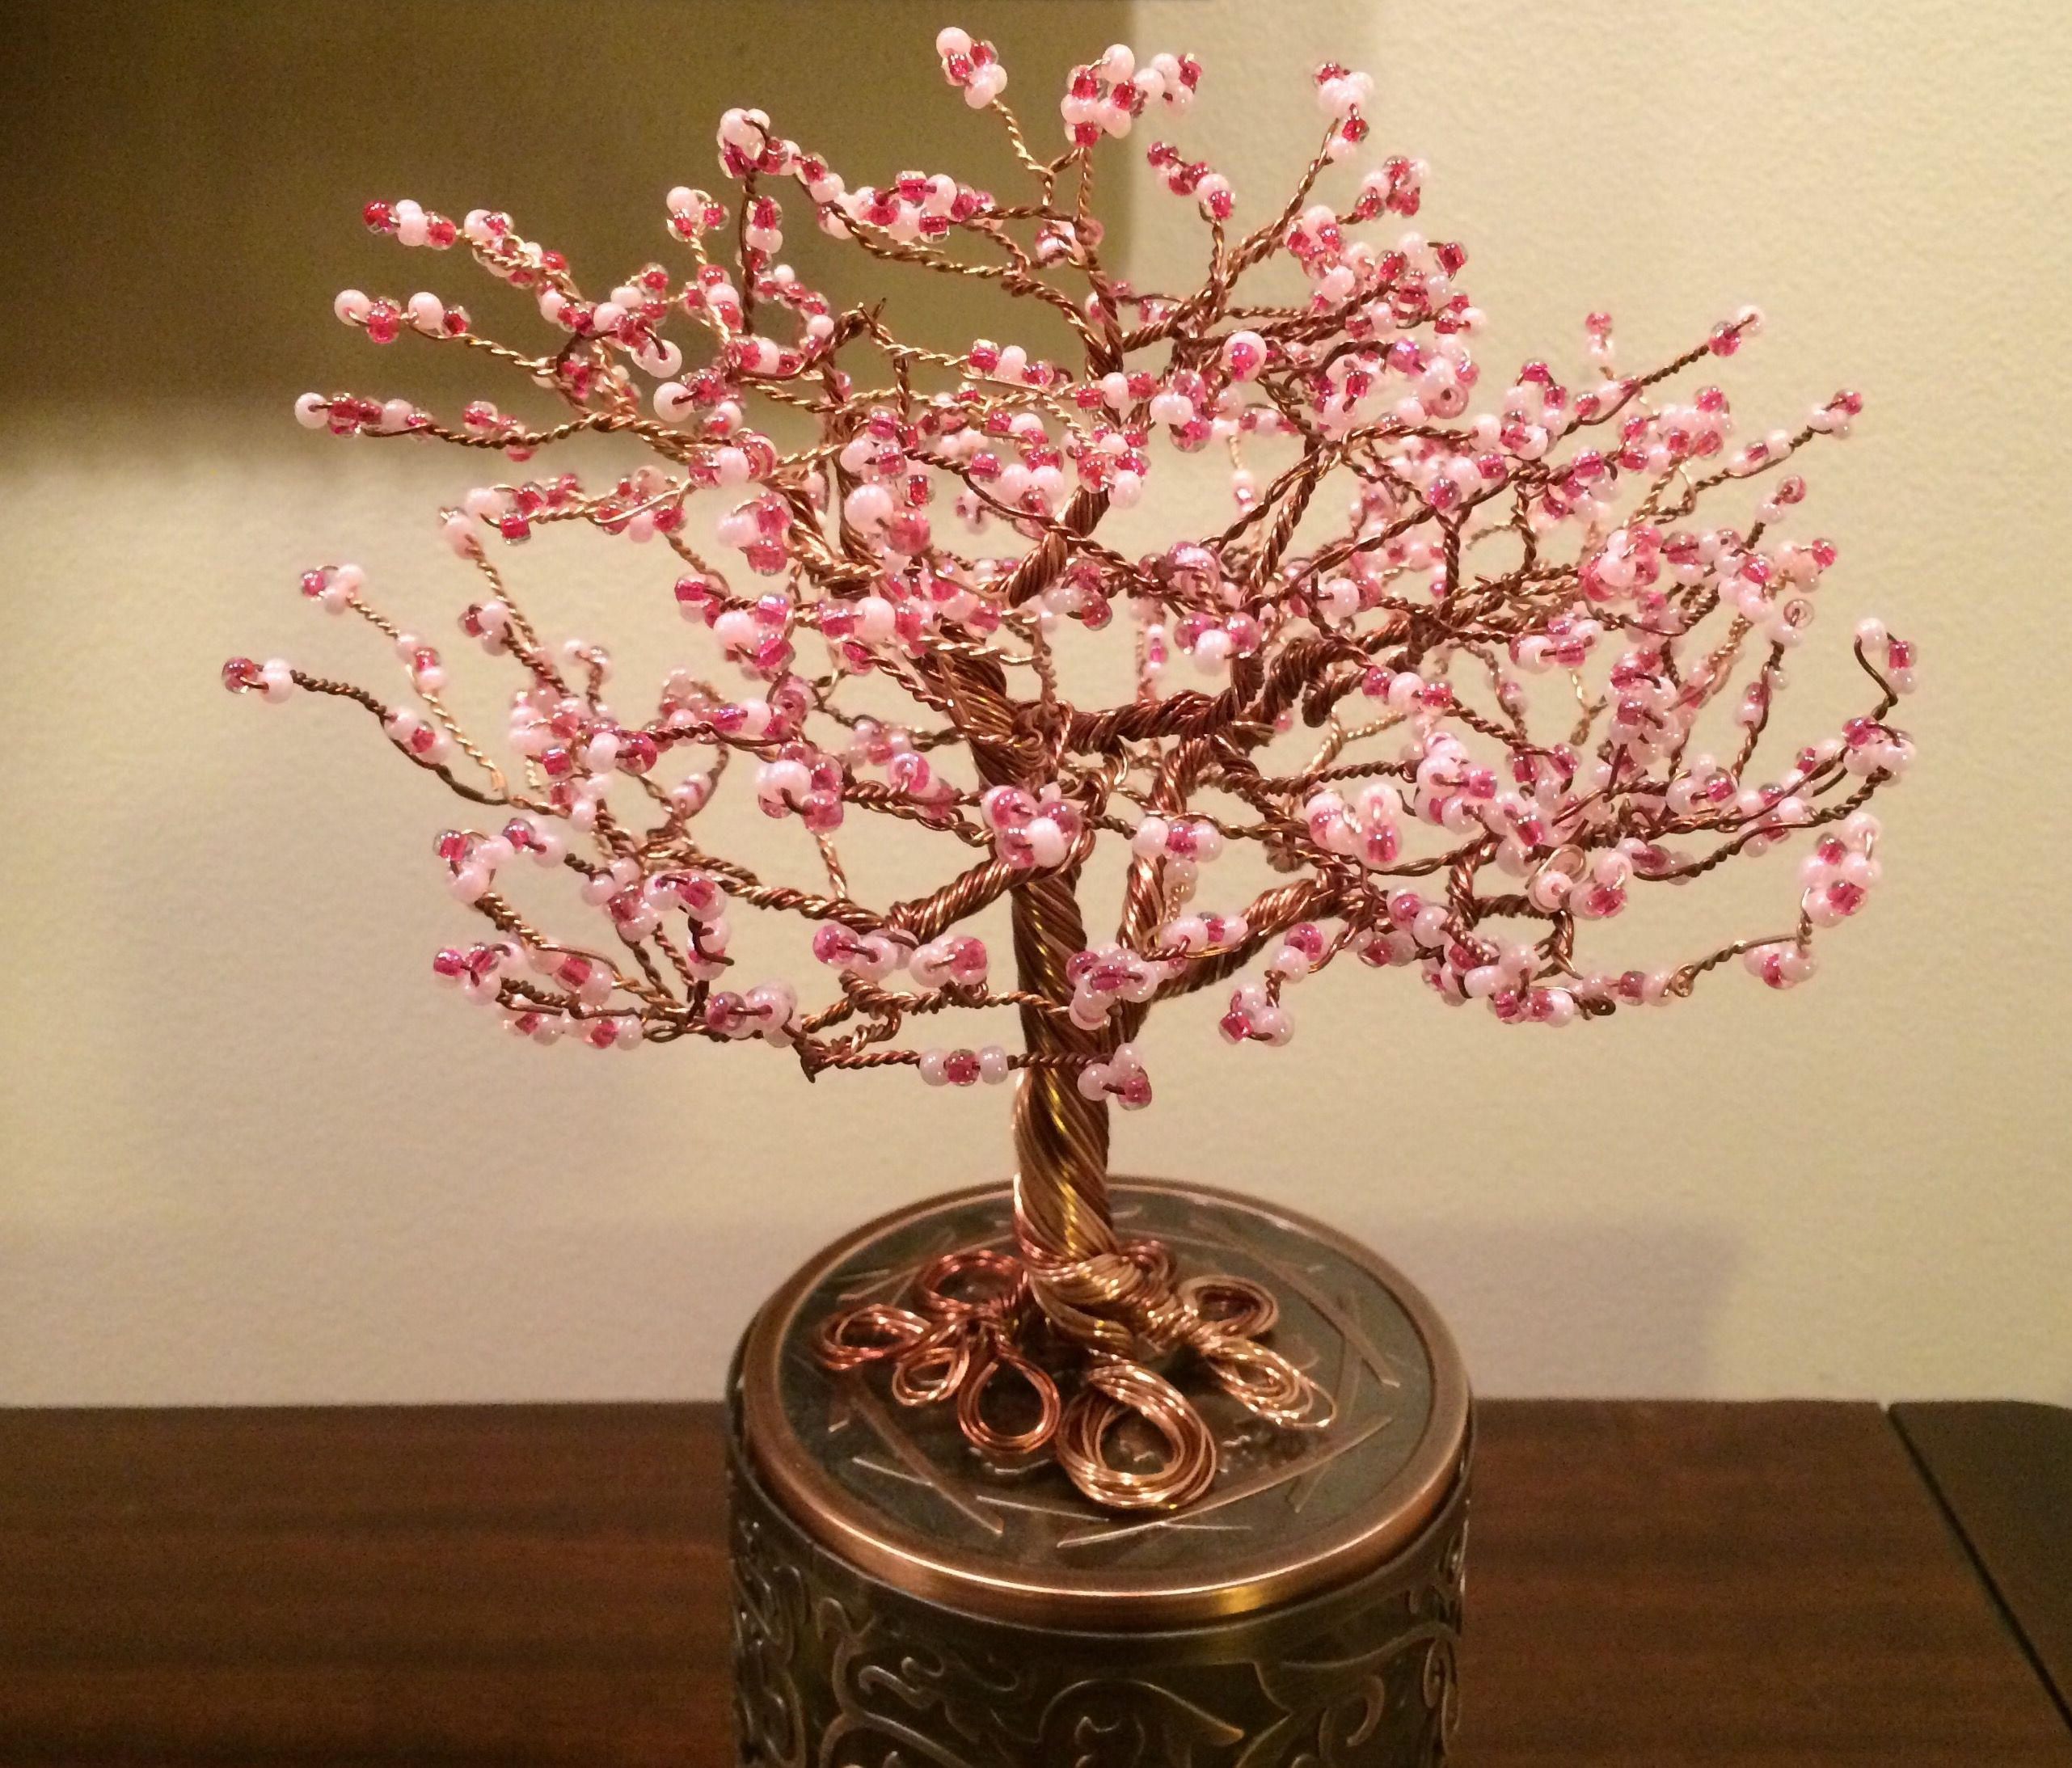 My First Japanese Cherry Blossom Wire Tree Japanese Cherry Blossom Japanese Cherry Diy Beads